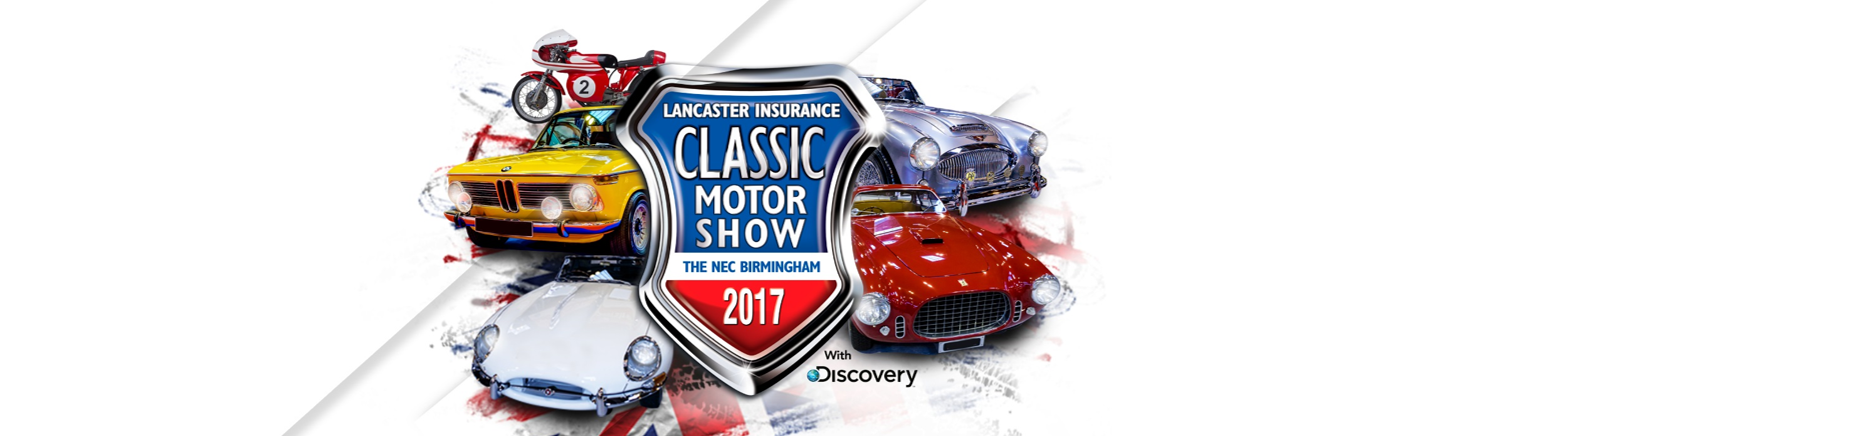 Lancaster Insurance Classic Motor Show 2017 with Discovery